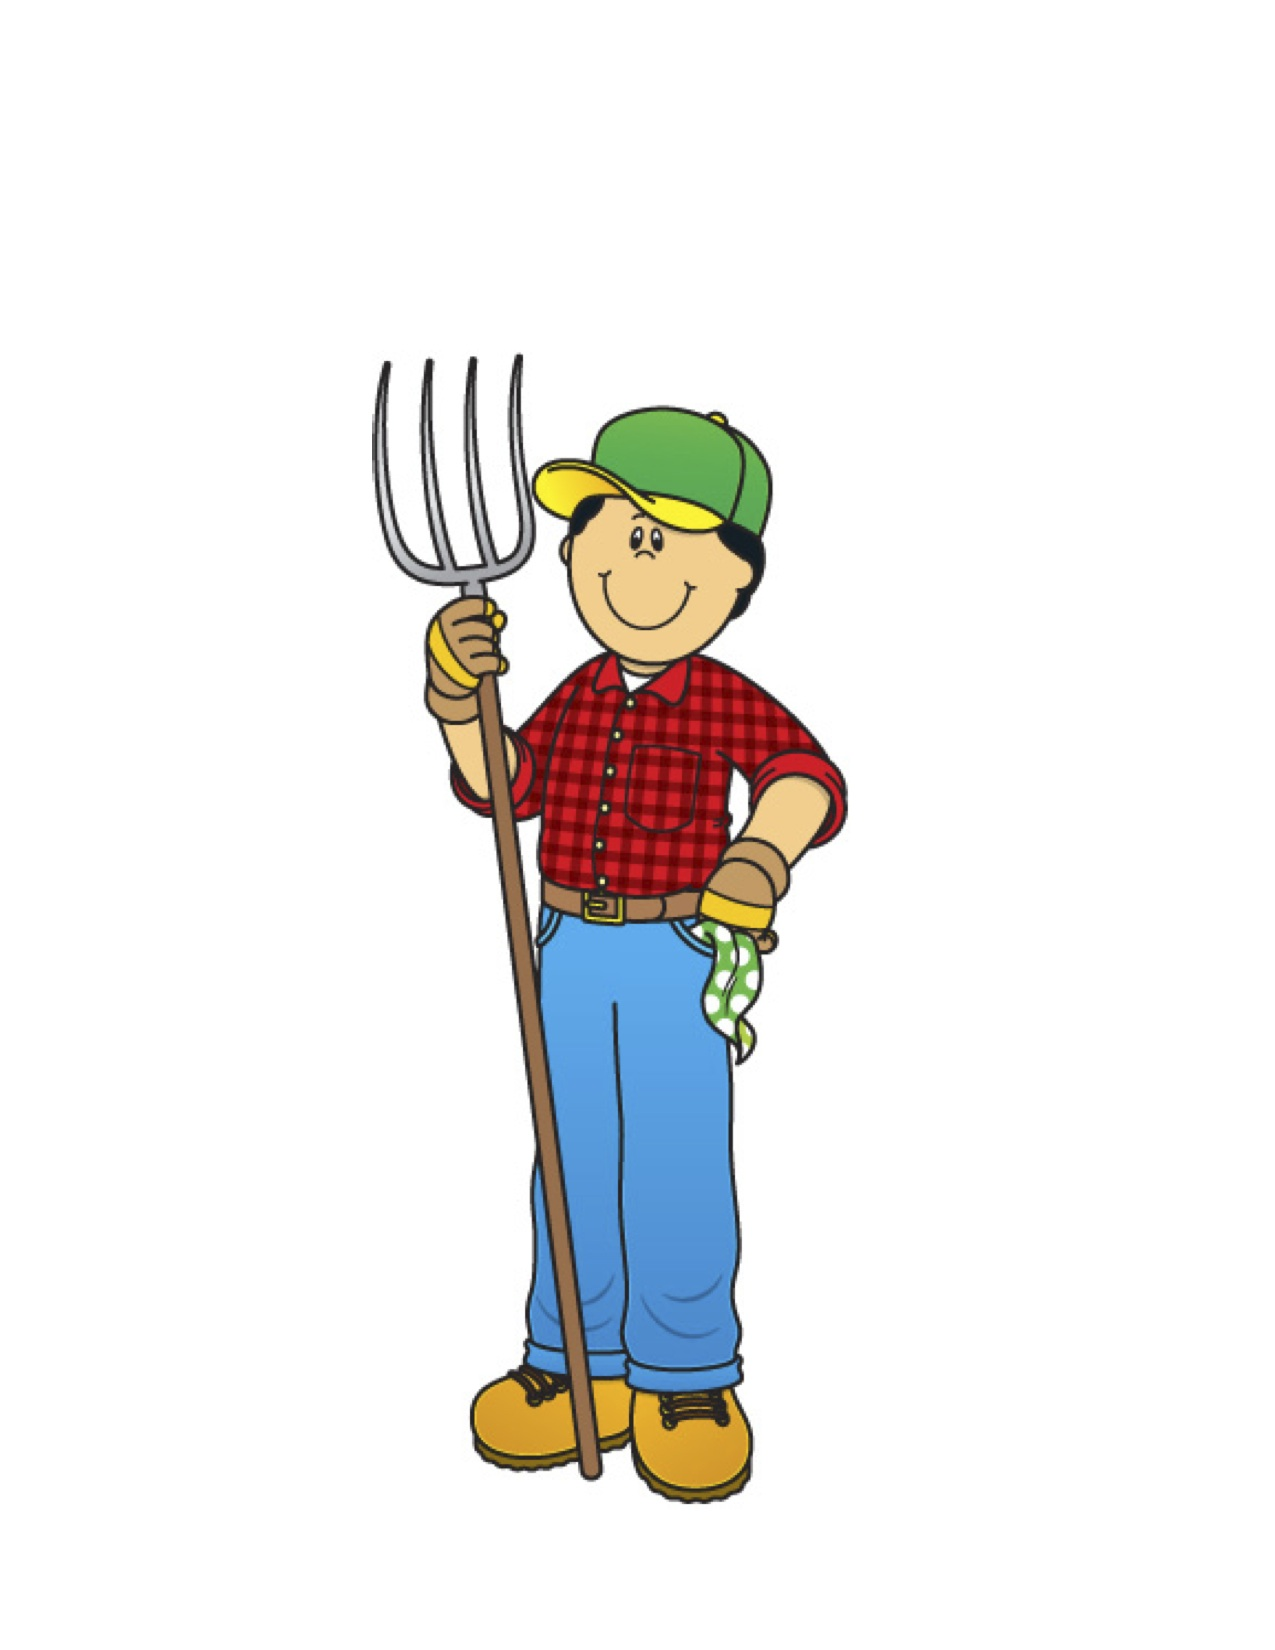 Farming clipart farm worker. Christmas gingerbread man at